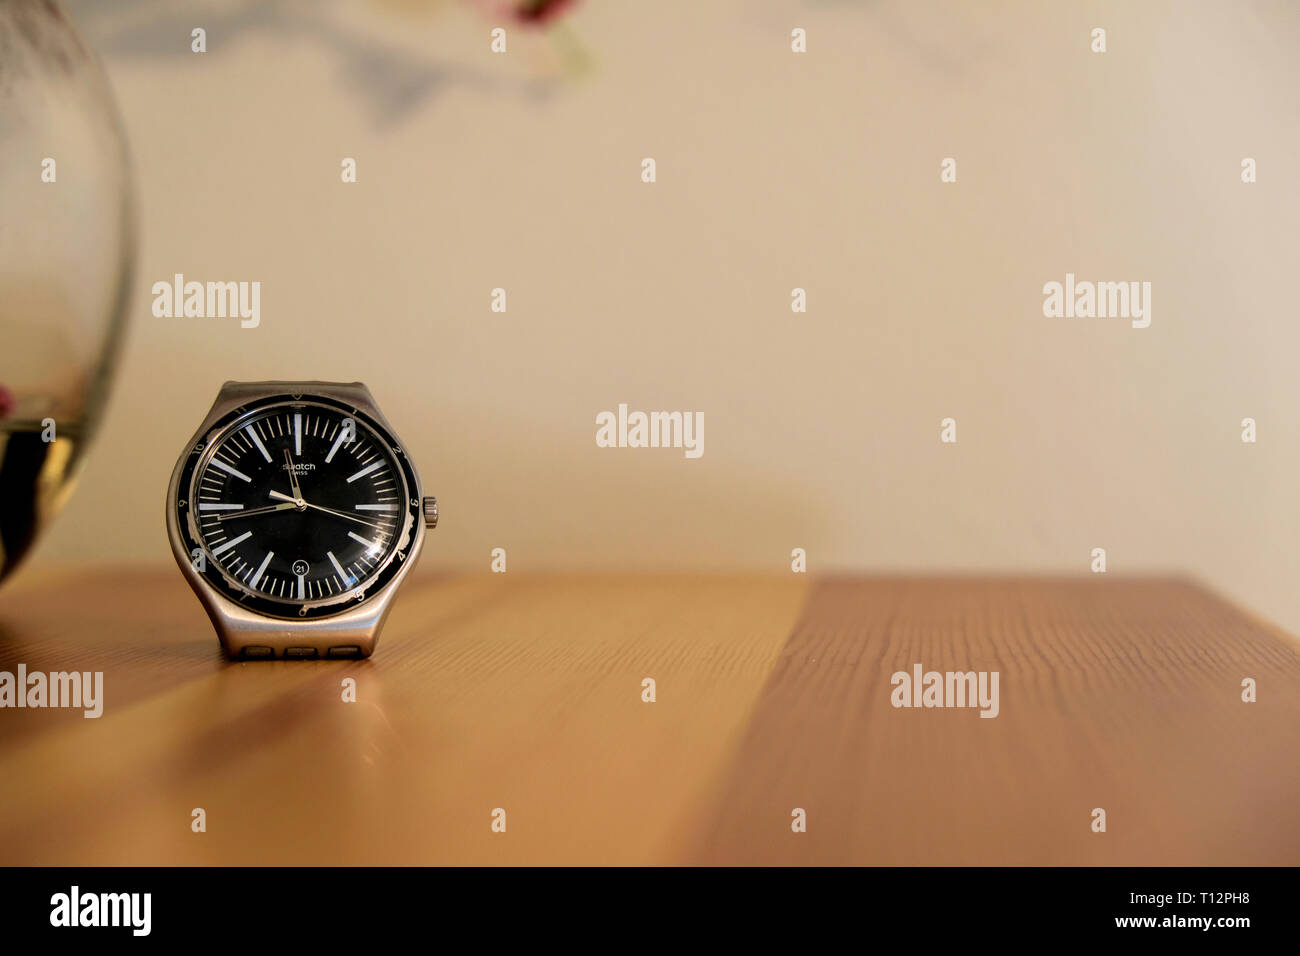 Wrist watch on wooden counter top; concept or order and time. - Stock Image